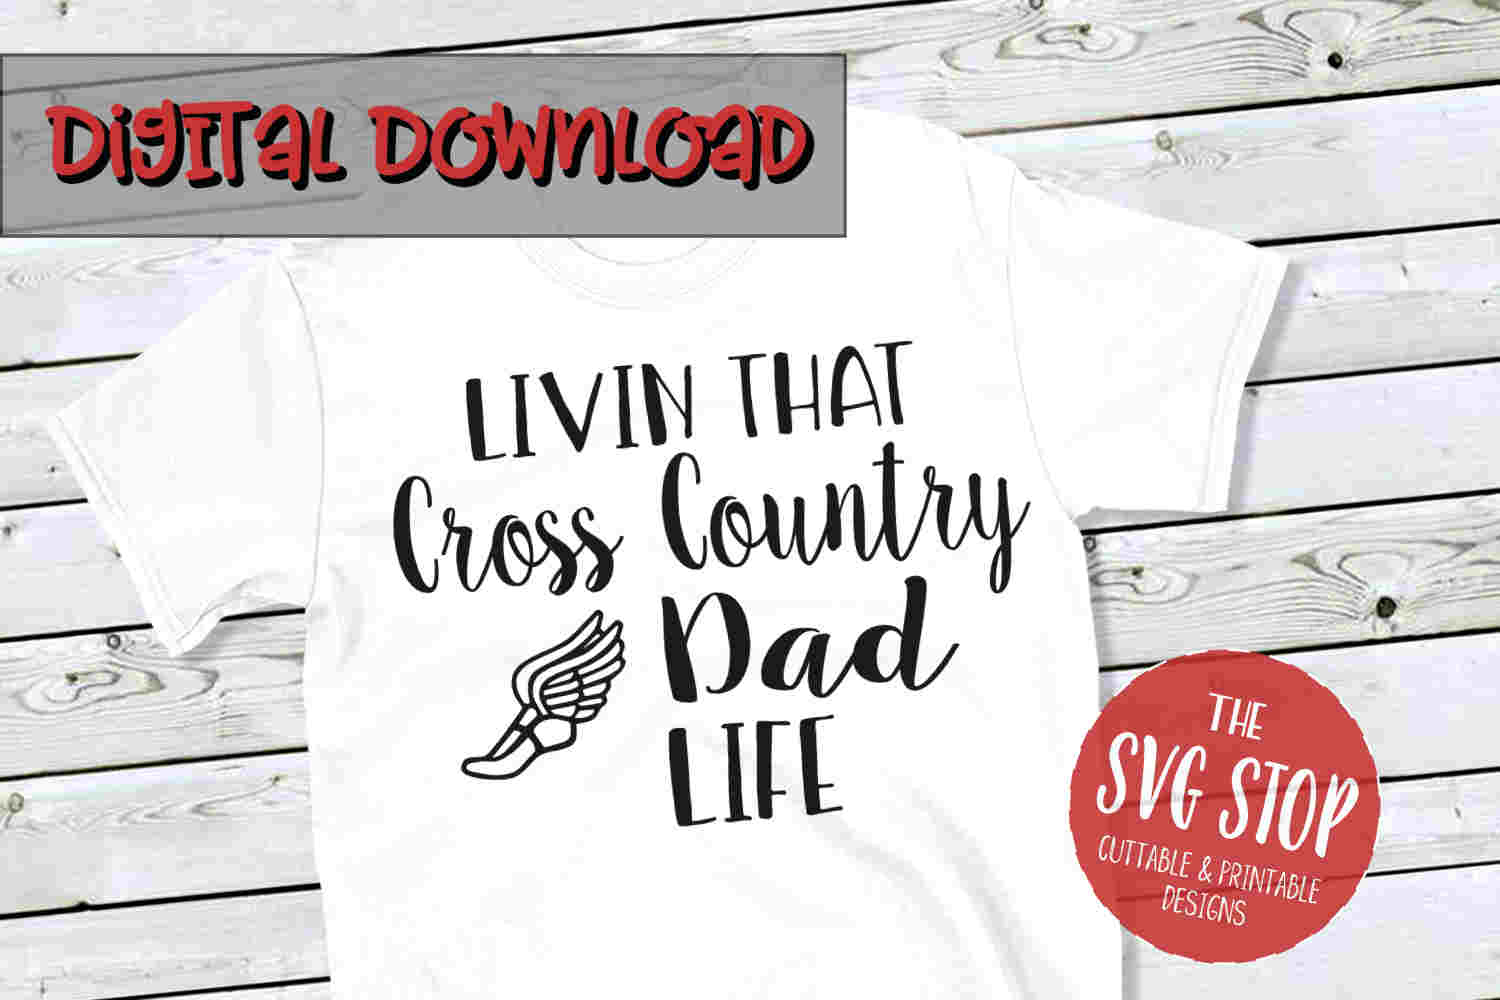 Cross Country Dad Life -SVG, PNG, DXF example image 1